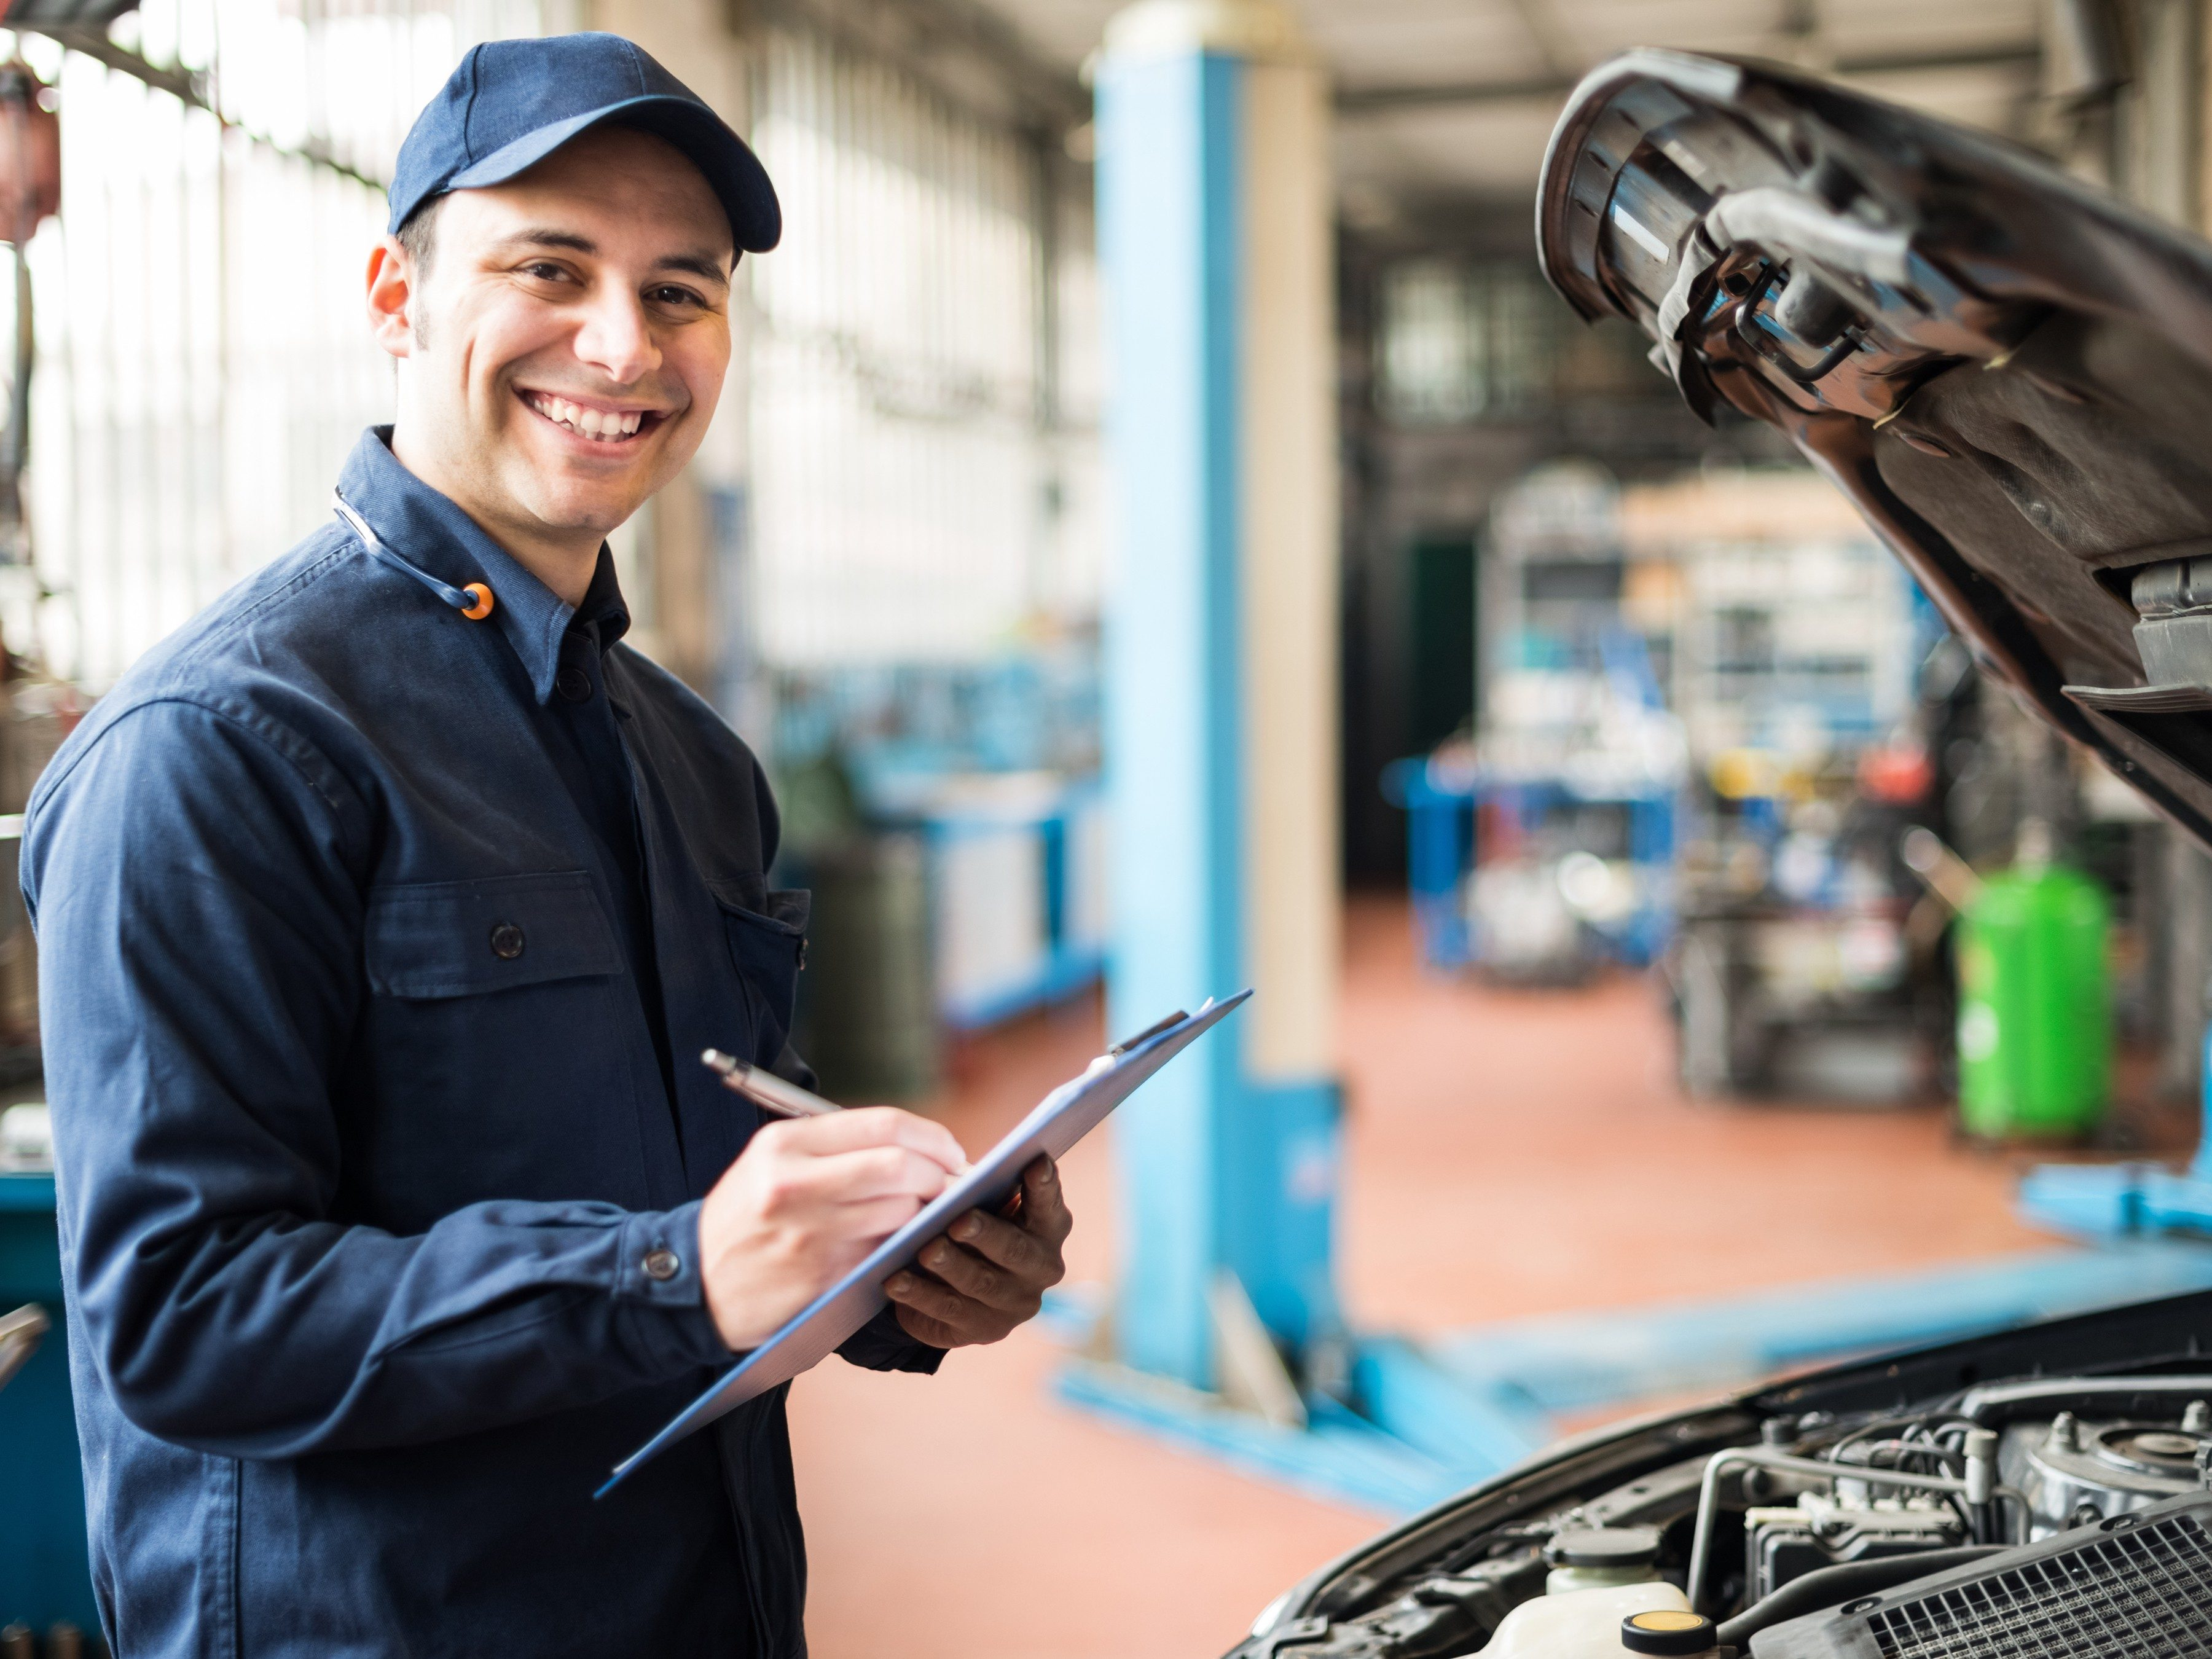 1. Insist that the Mechanic Gives You an Up-Front Estimate